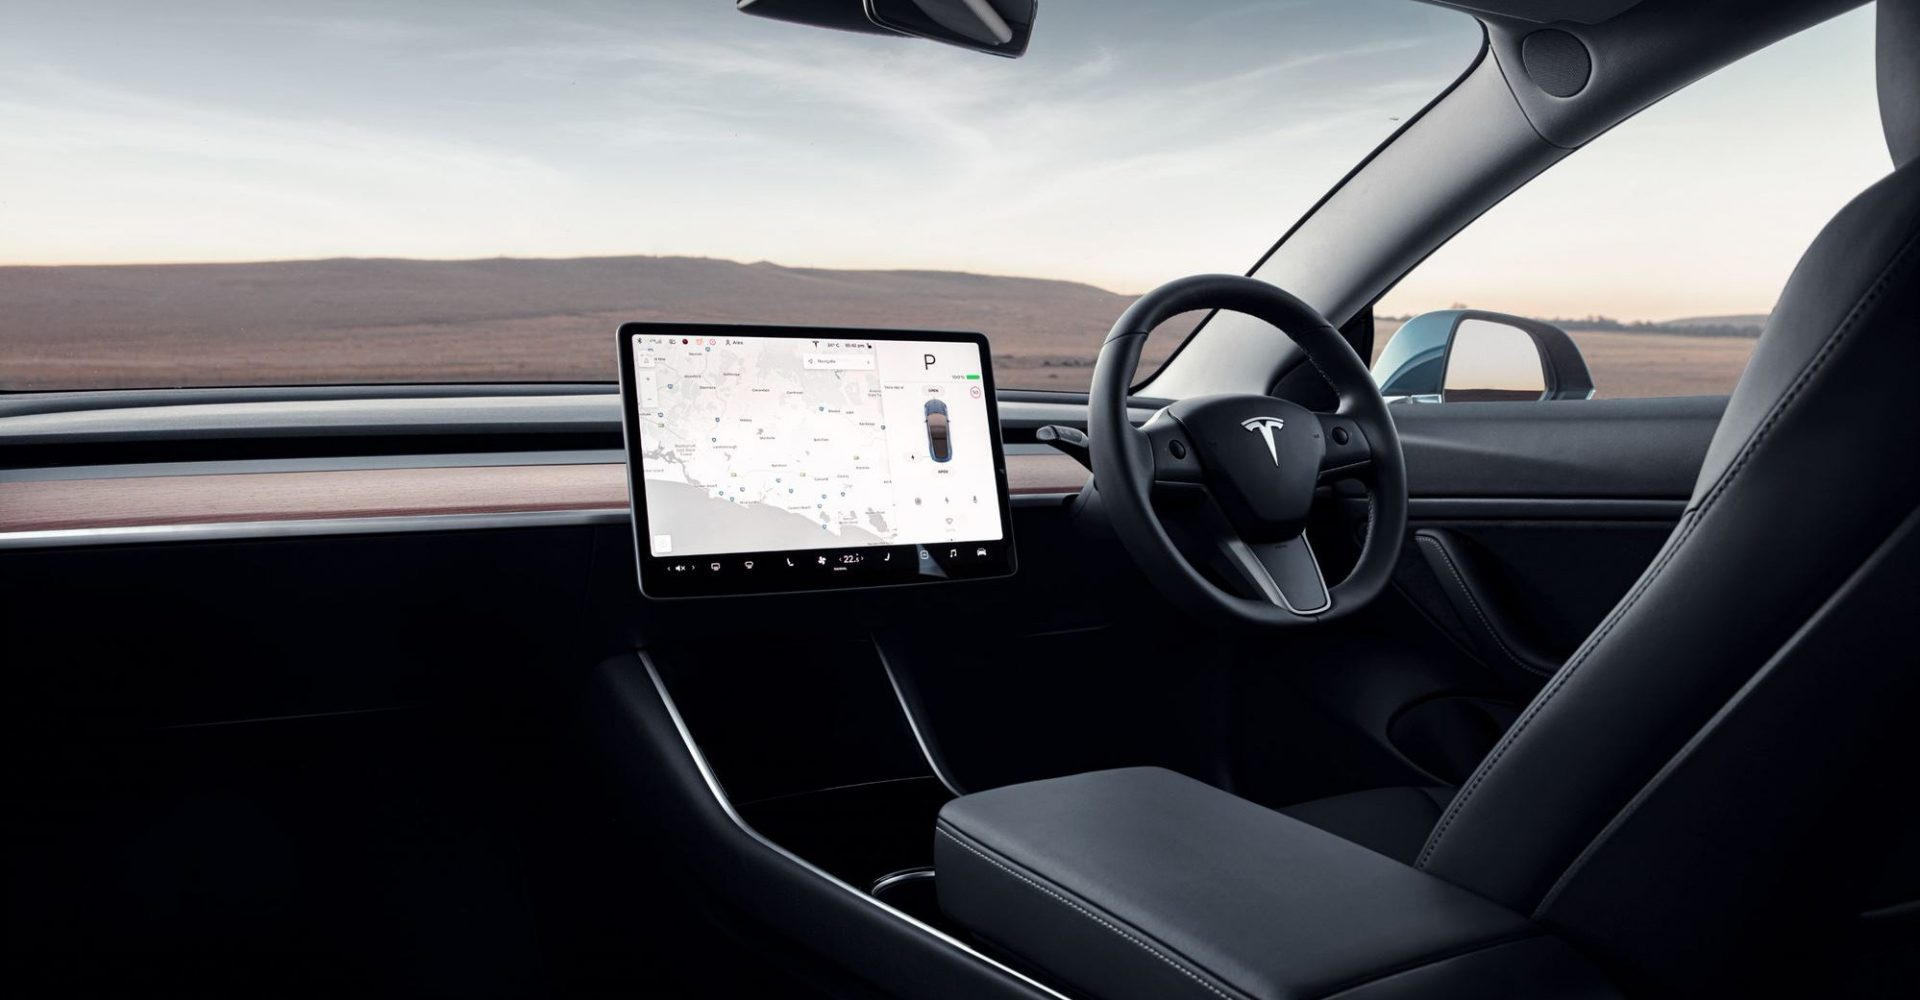 Tesla touchscreen should be treated as a distracting electronic device, says German court